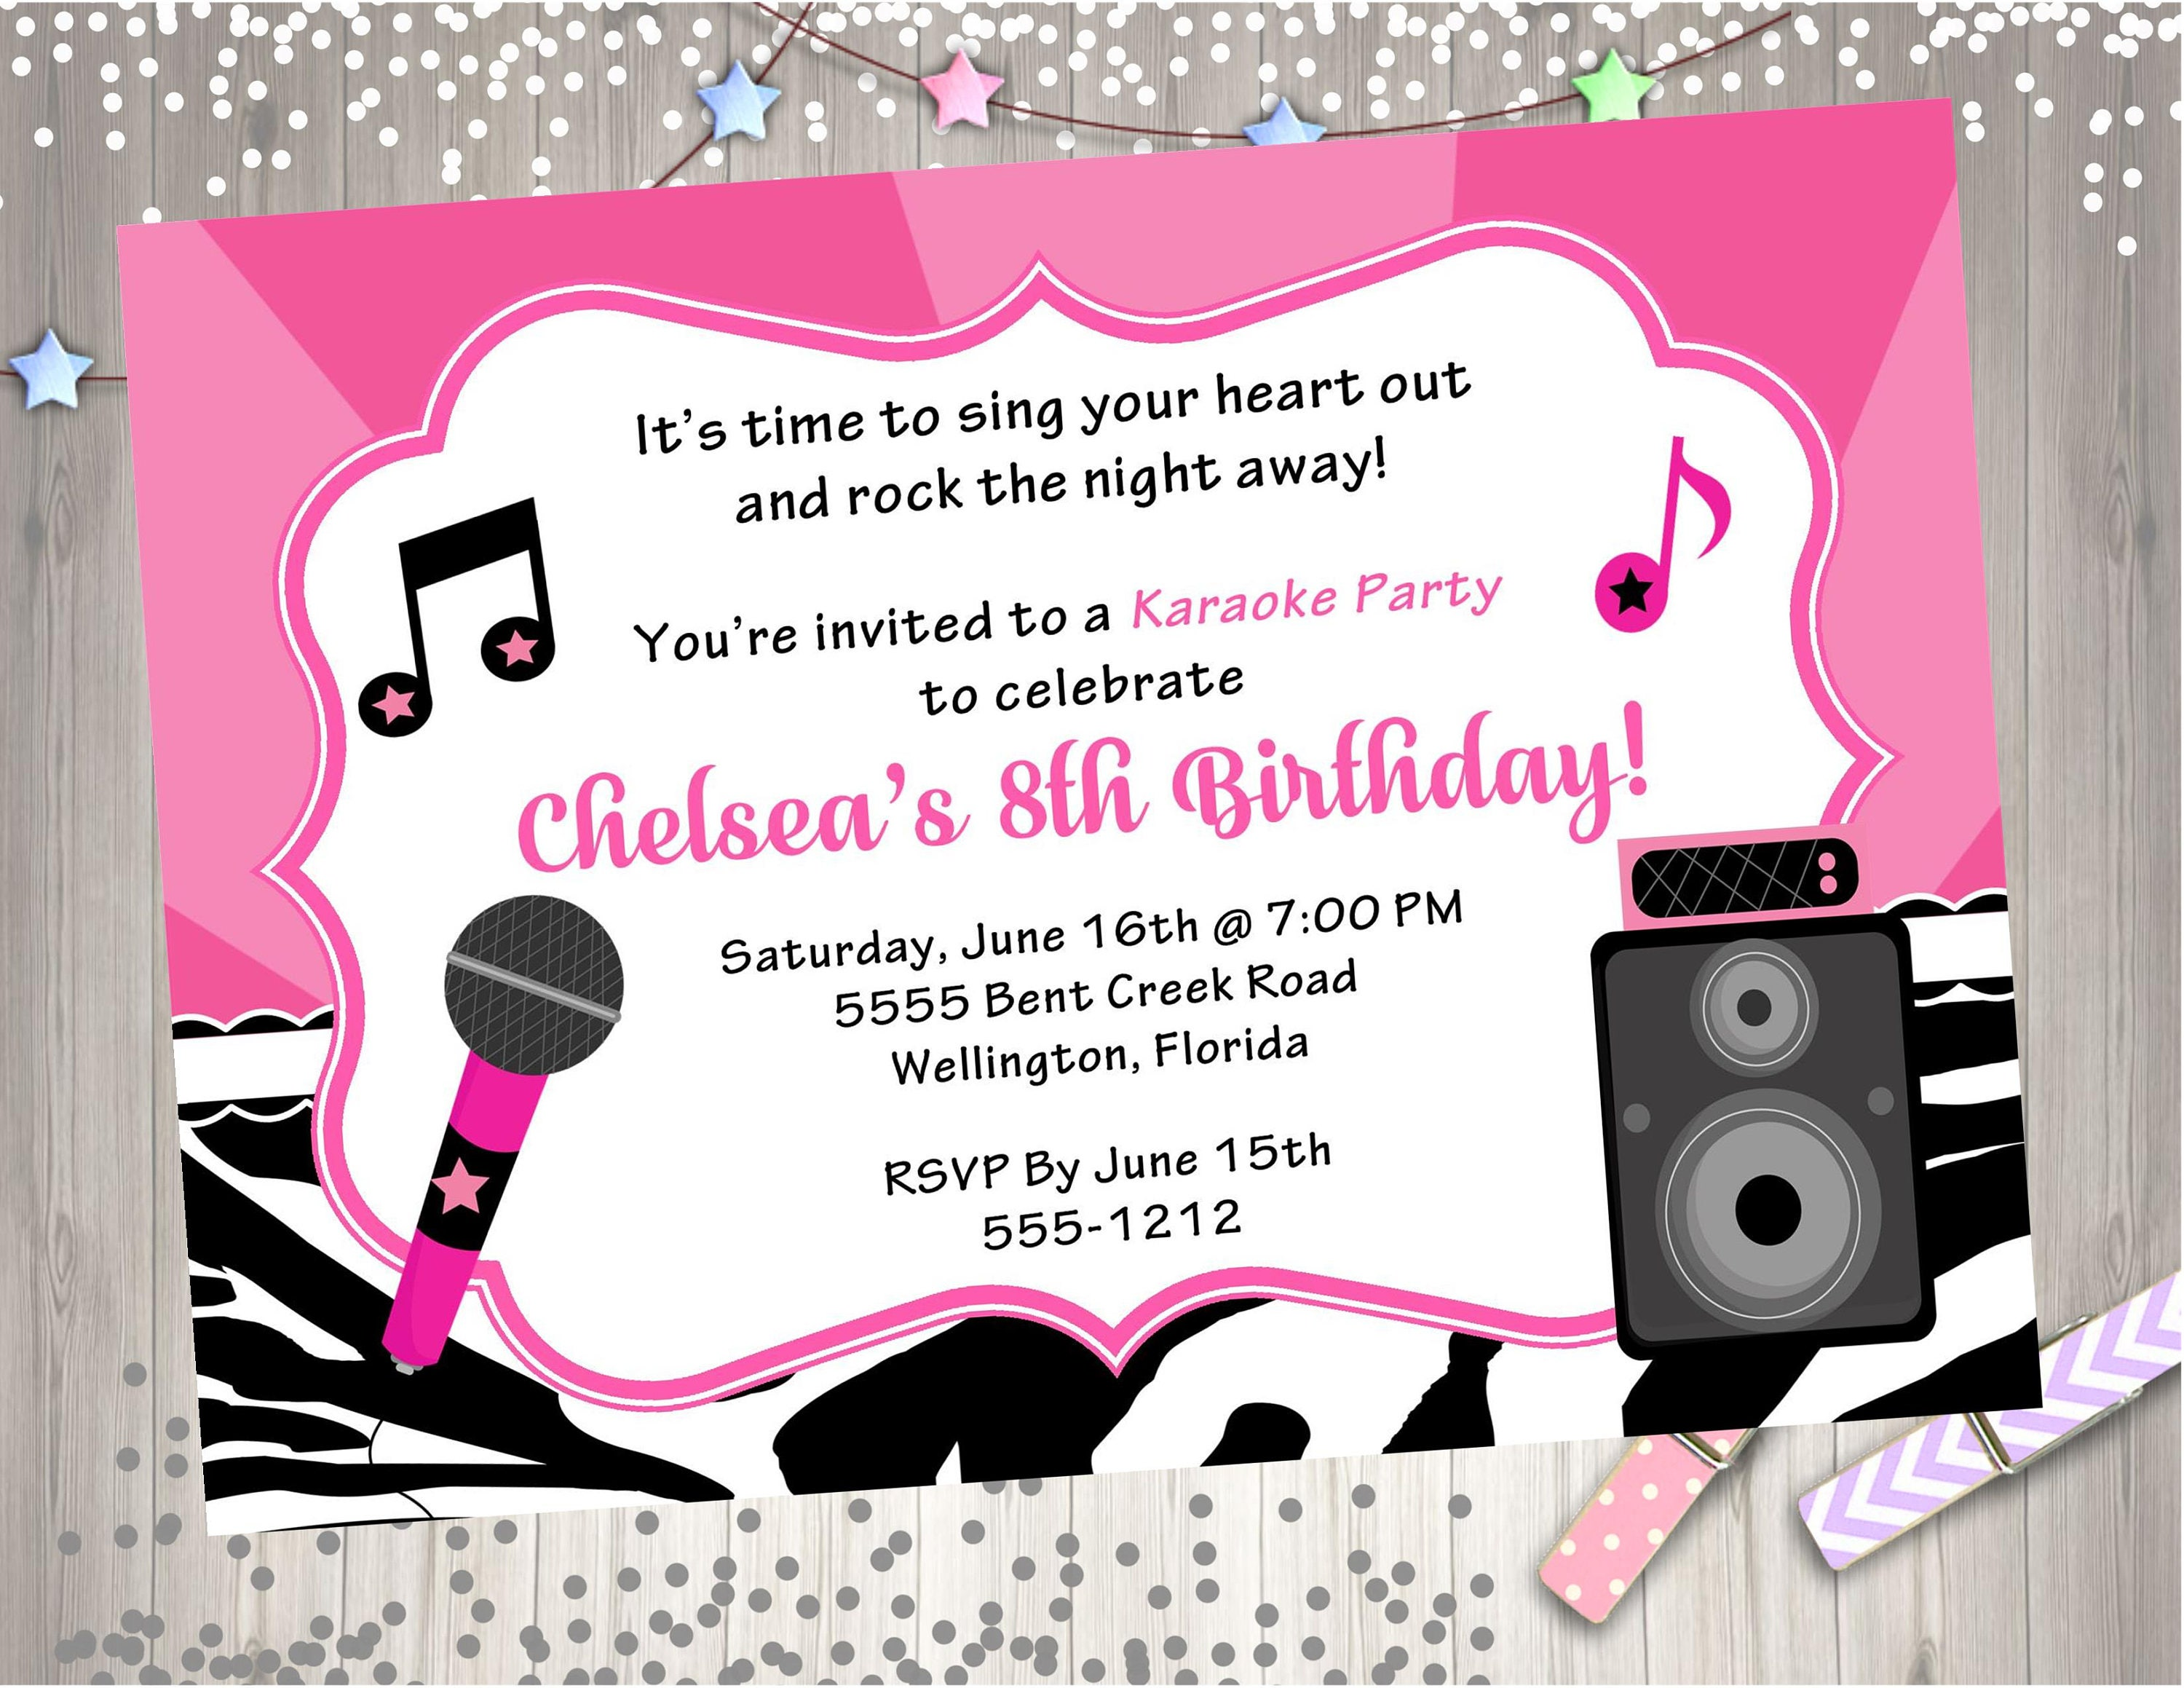 Karaoke party birthday invitation diy print your own zoom monicamarmolfo Image collections